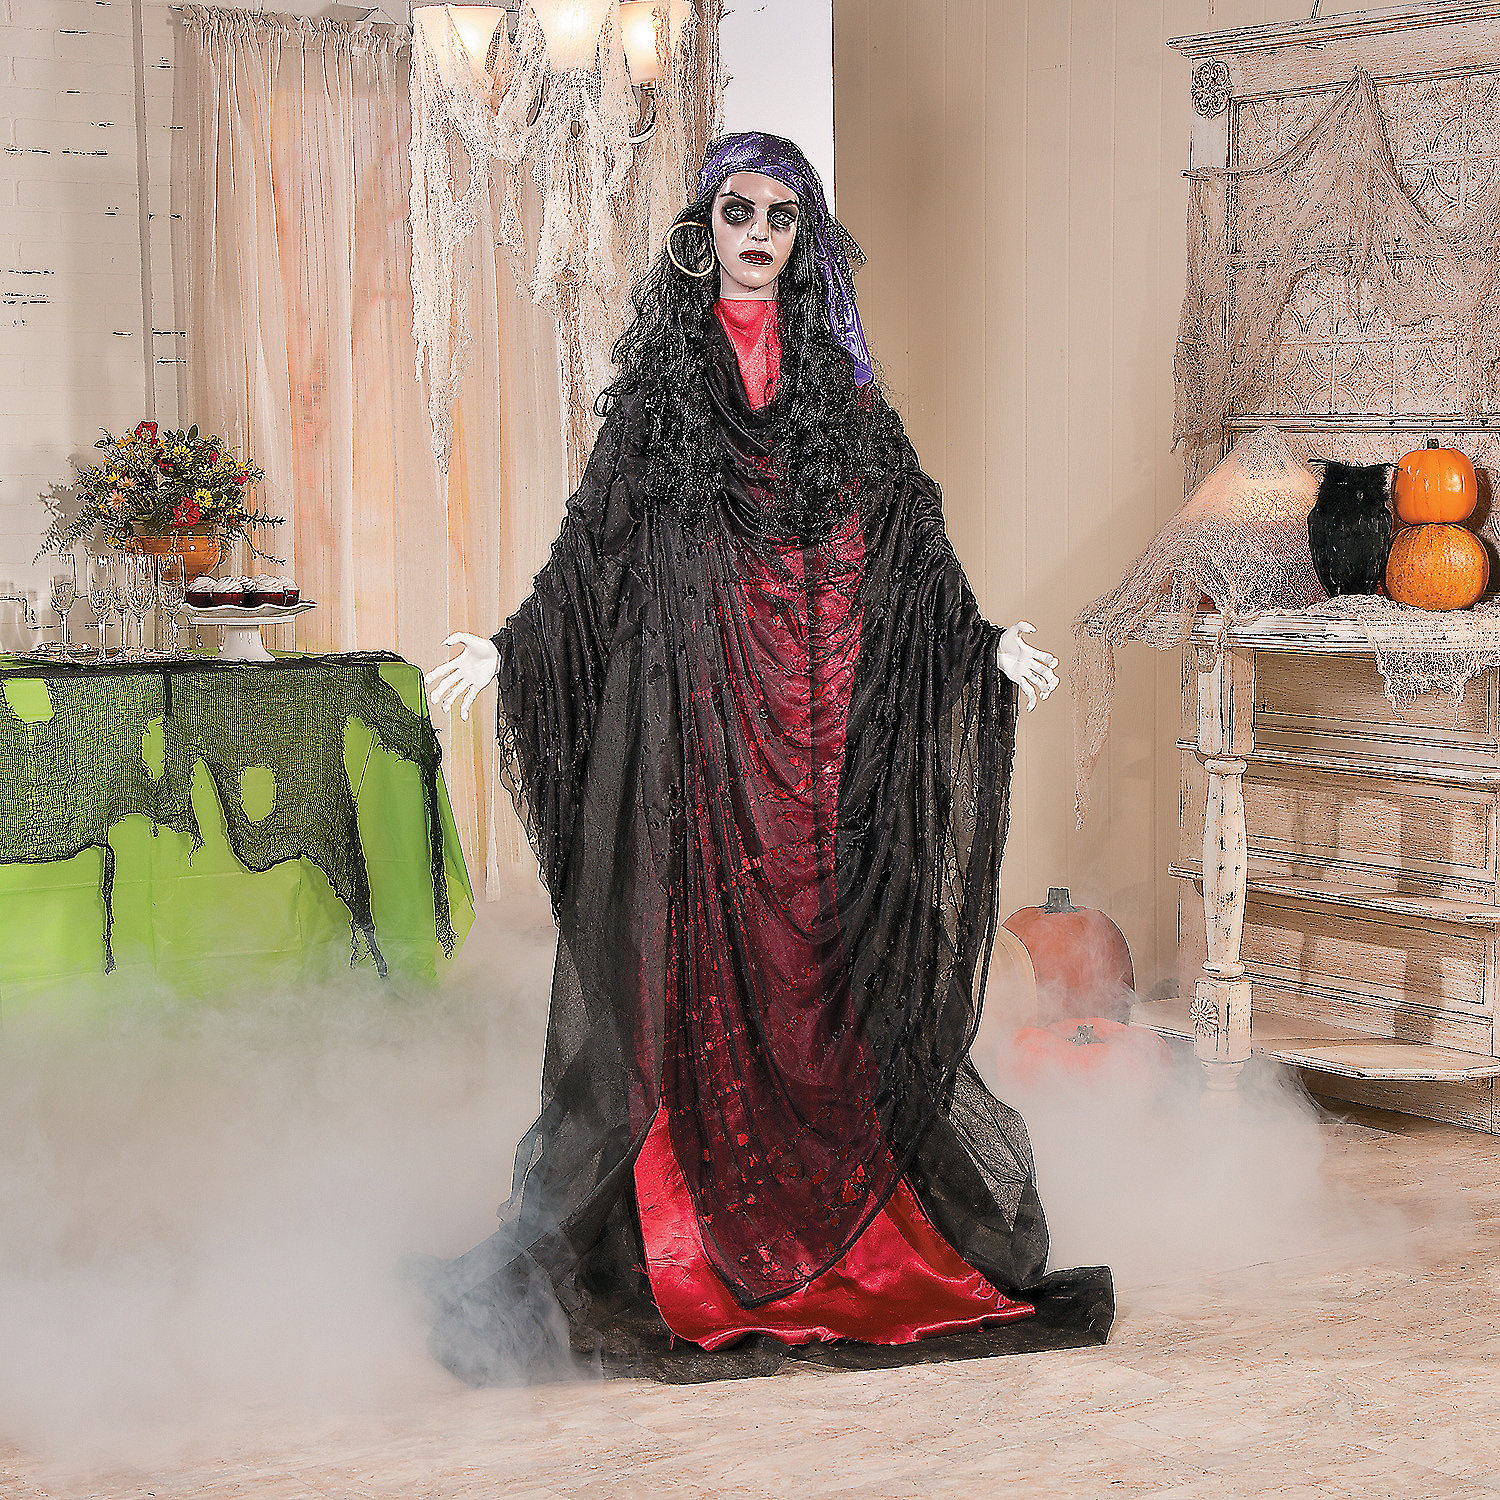 Madame Misery, Scary Halloween Decorations, Halloween